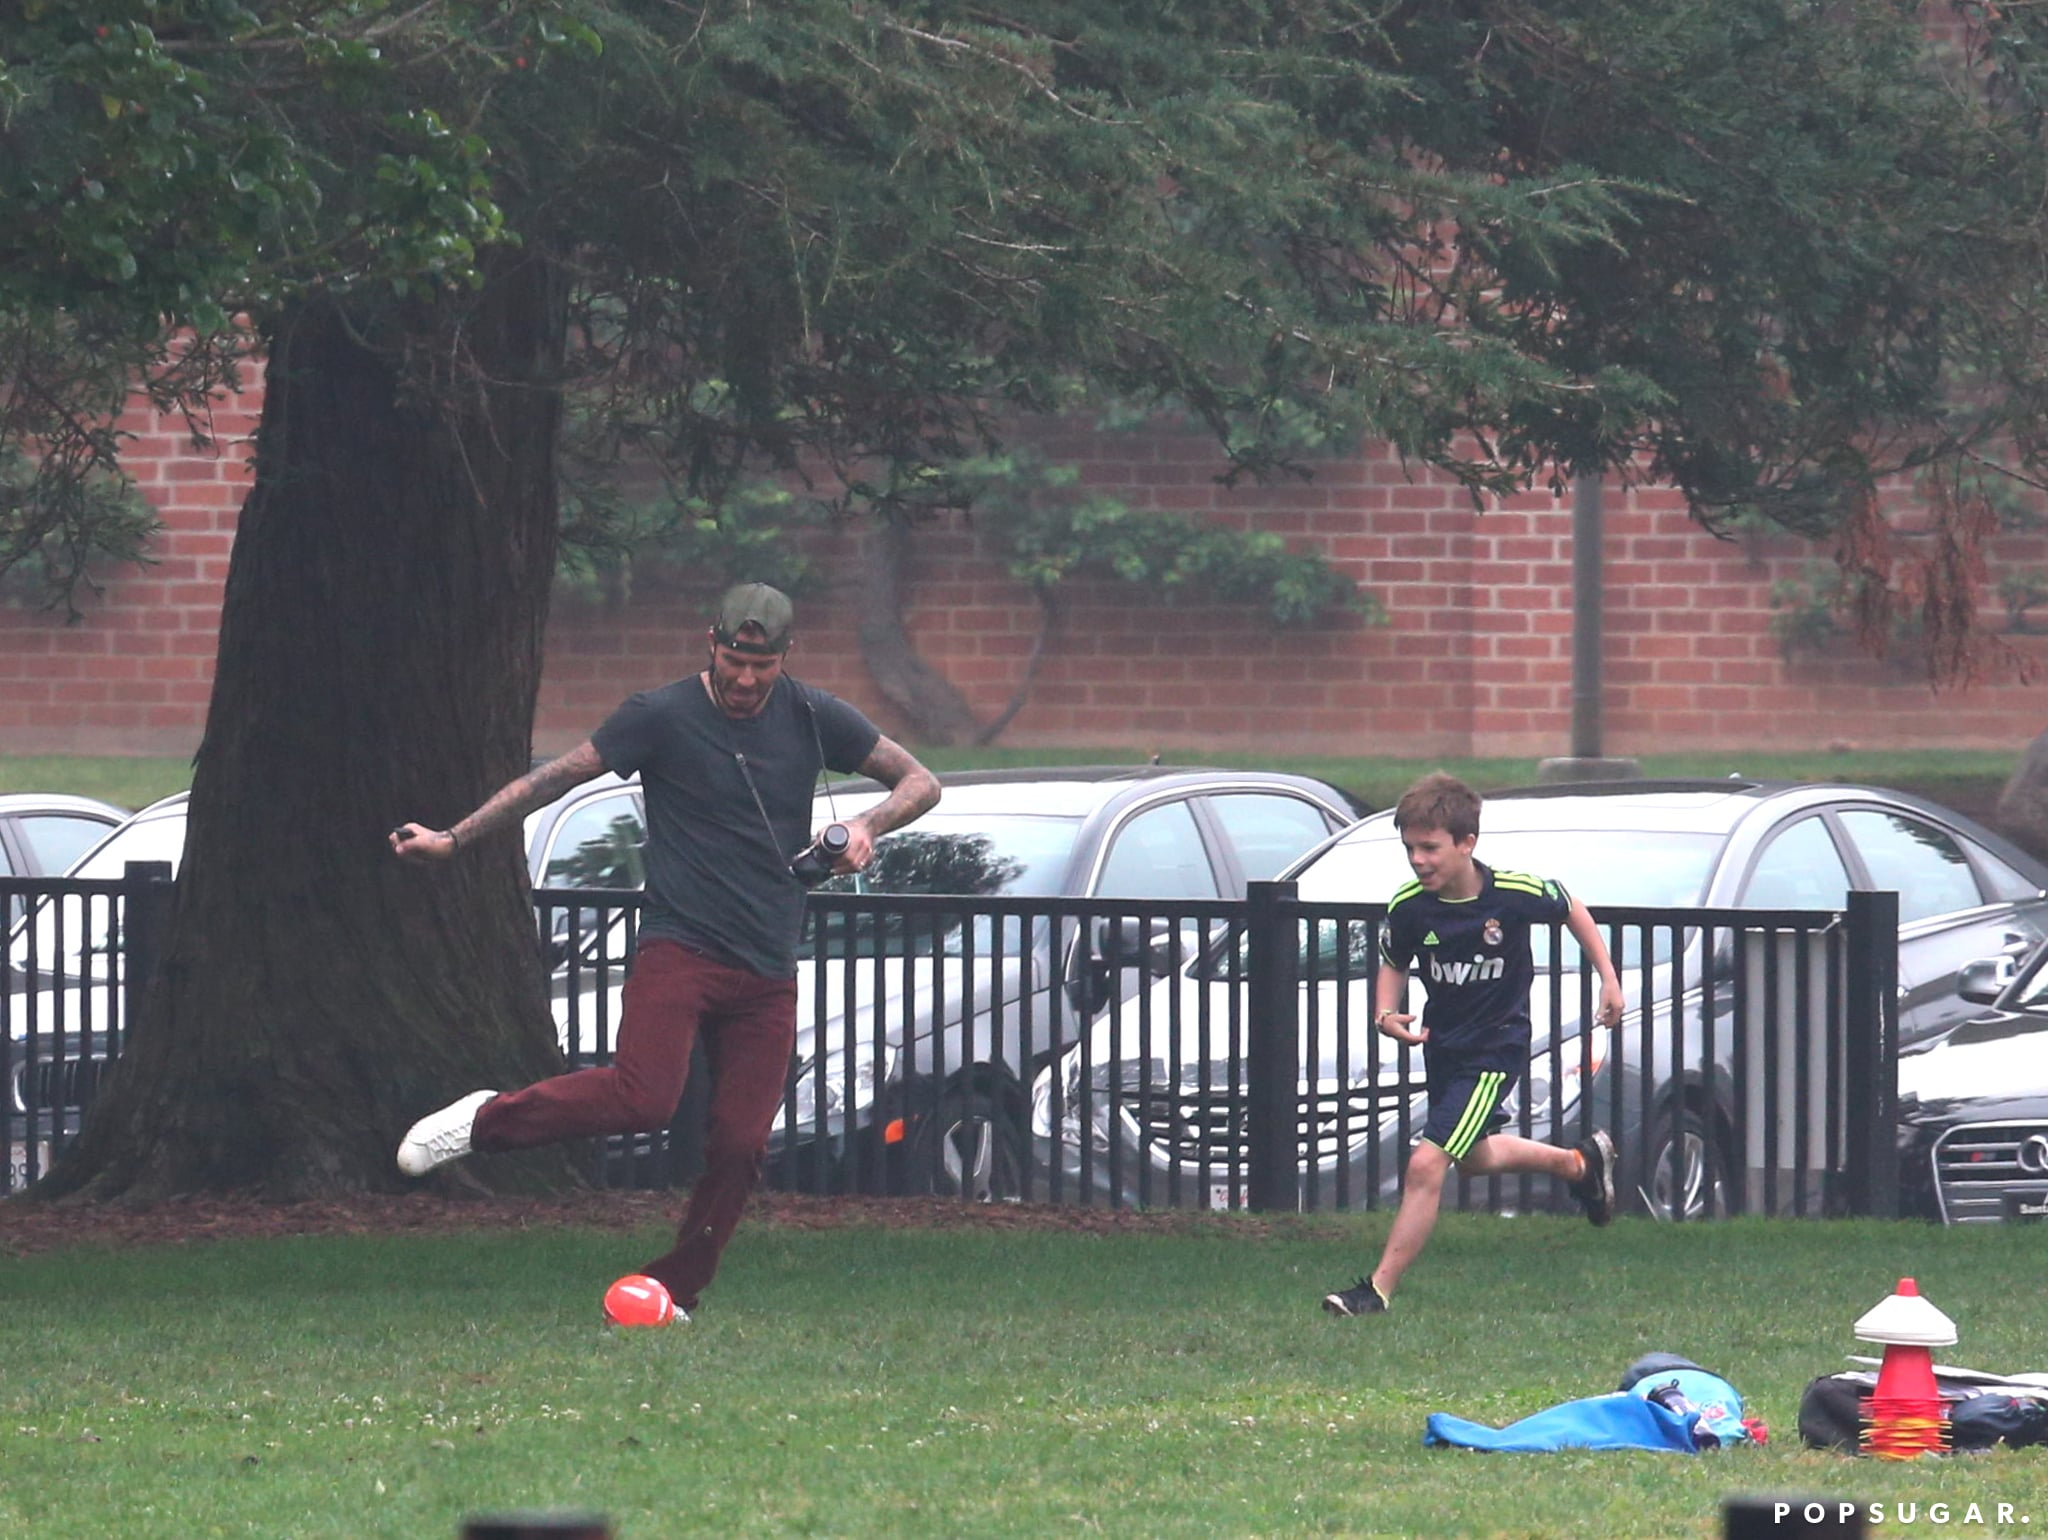 David Beckham played soccer with his son Cruz when the group went to Harper's game.